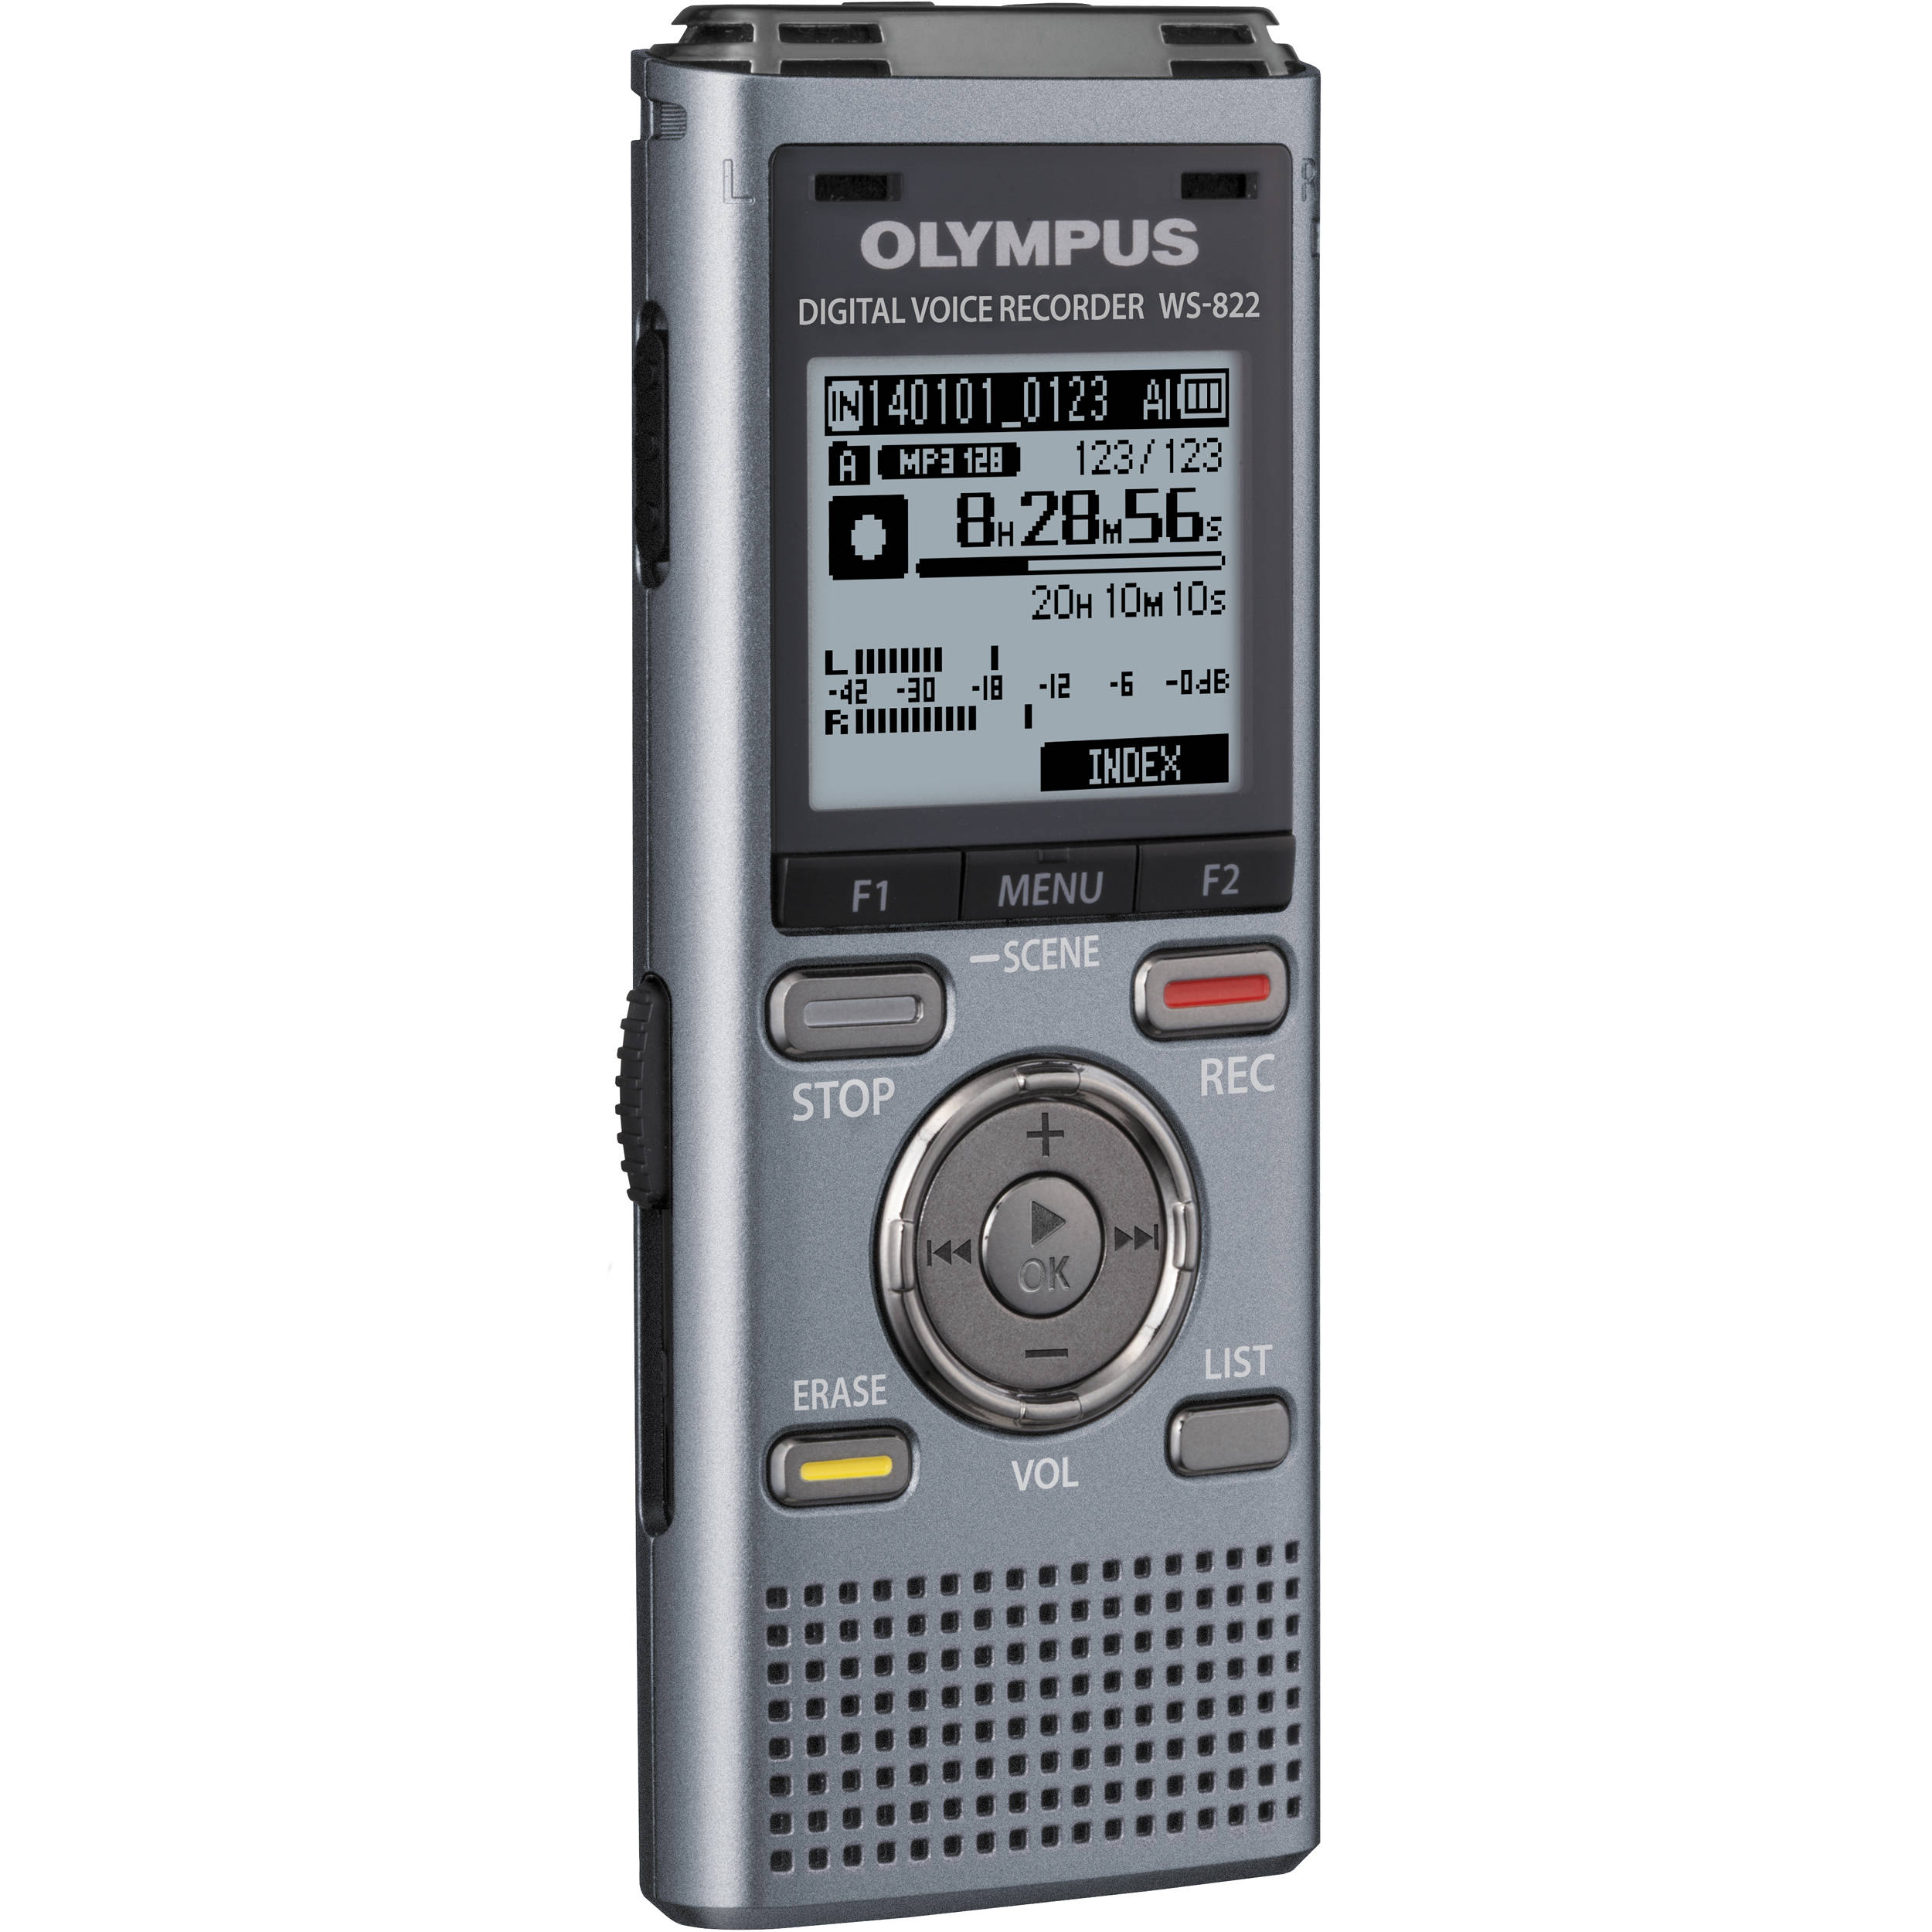 olympus digital voice recorder vn 3100pc driver olympus voice recorder vn-3100pc manual olympus vn 4100pc manual